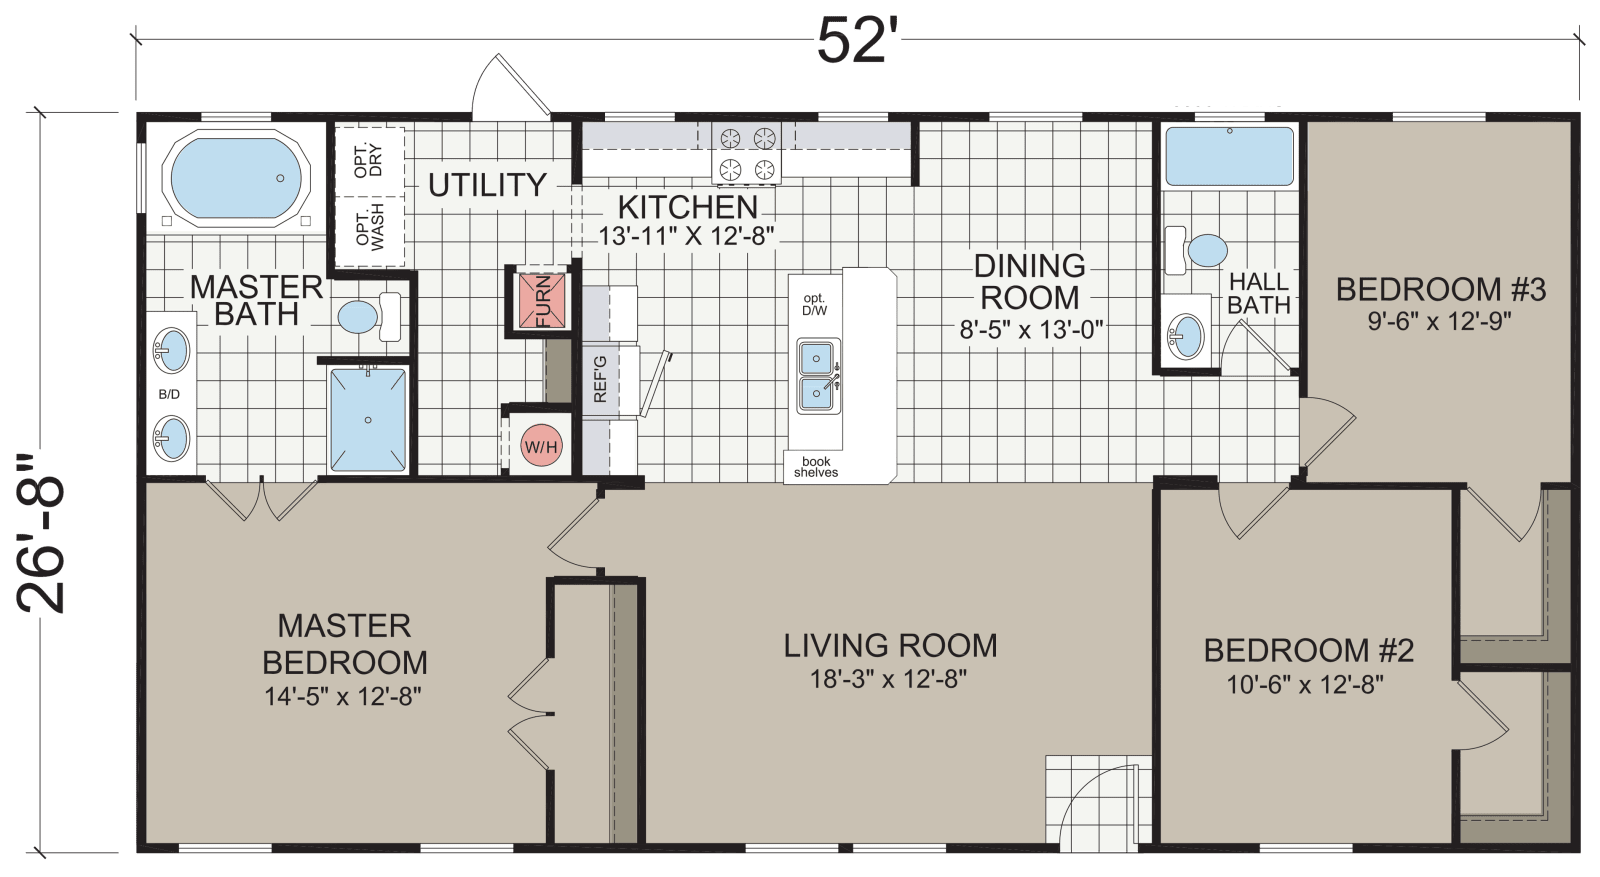 Dutch 352 Marion Built By Champion Homes In Lillington Nc View The Floor Plan Of This 3 Bedroom 2 Ba Mobile Home Floor Plans Floor Plans House Floor Plans